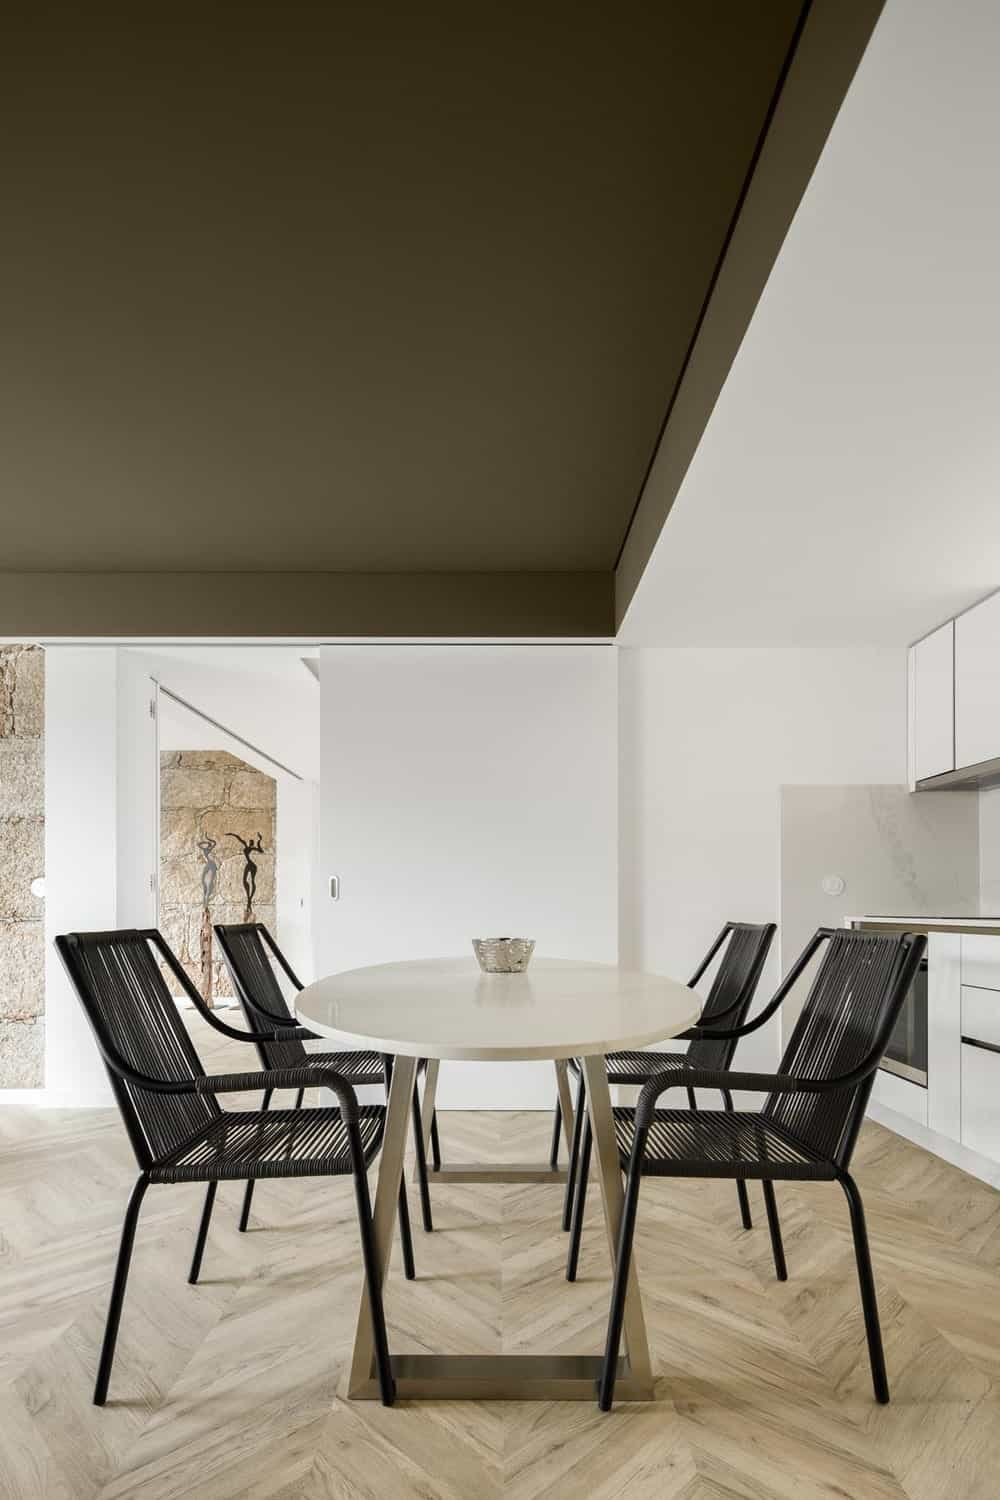 This is a close look at the dining area with a white marble dining table contrasted by the black dining chairs that stand out against the beige flooring.